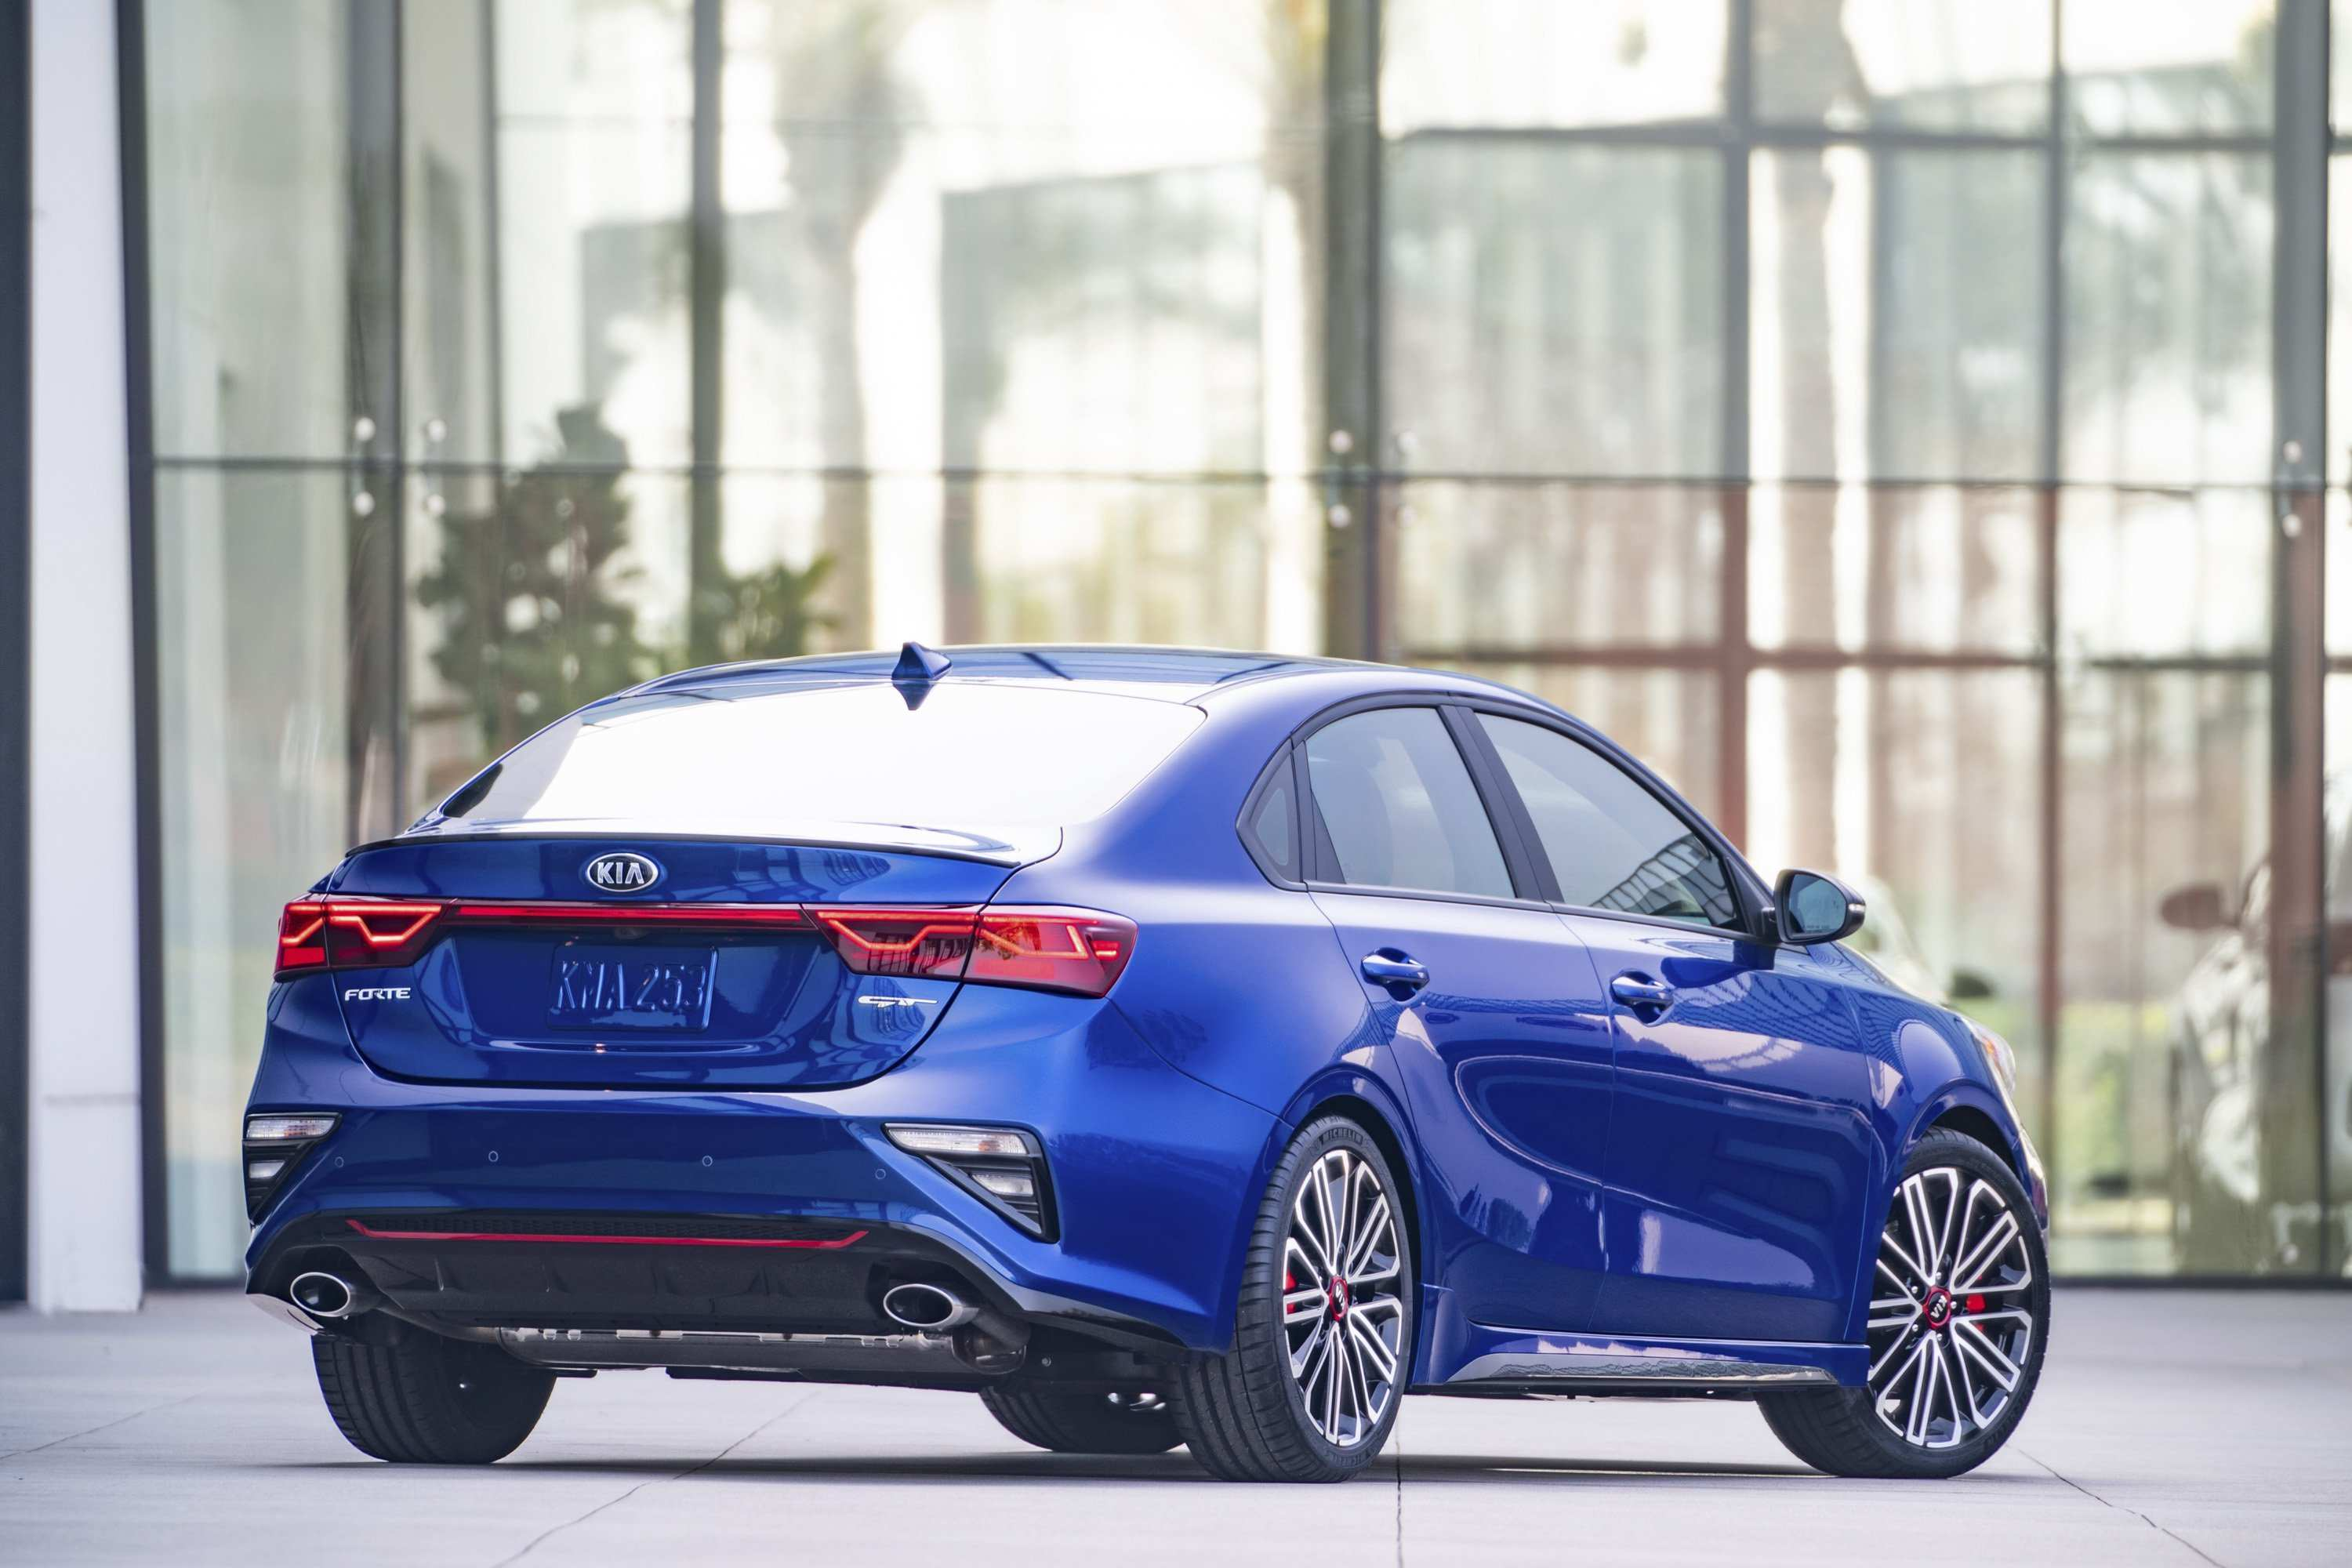 32 All New Kia Forte 5 Gt 2020 Redesign And Review